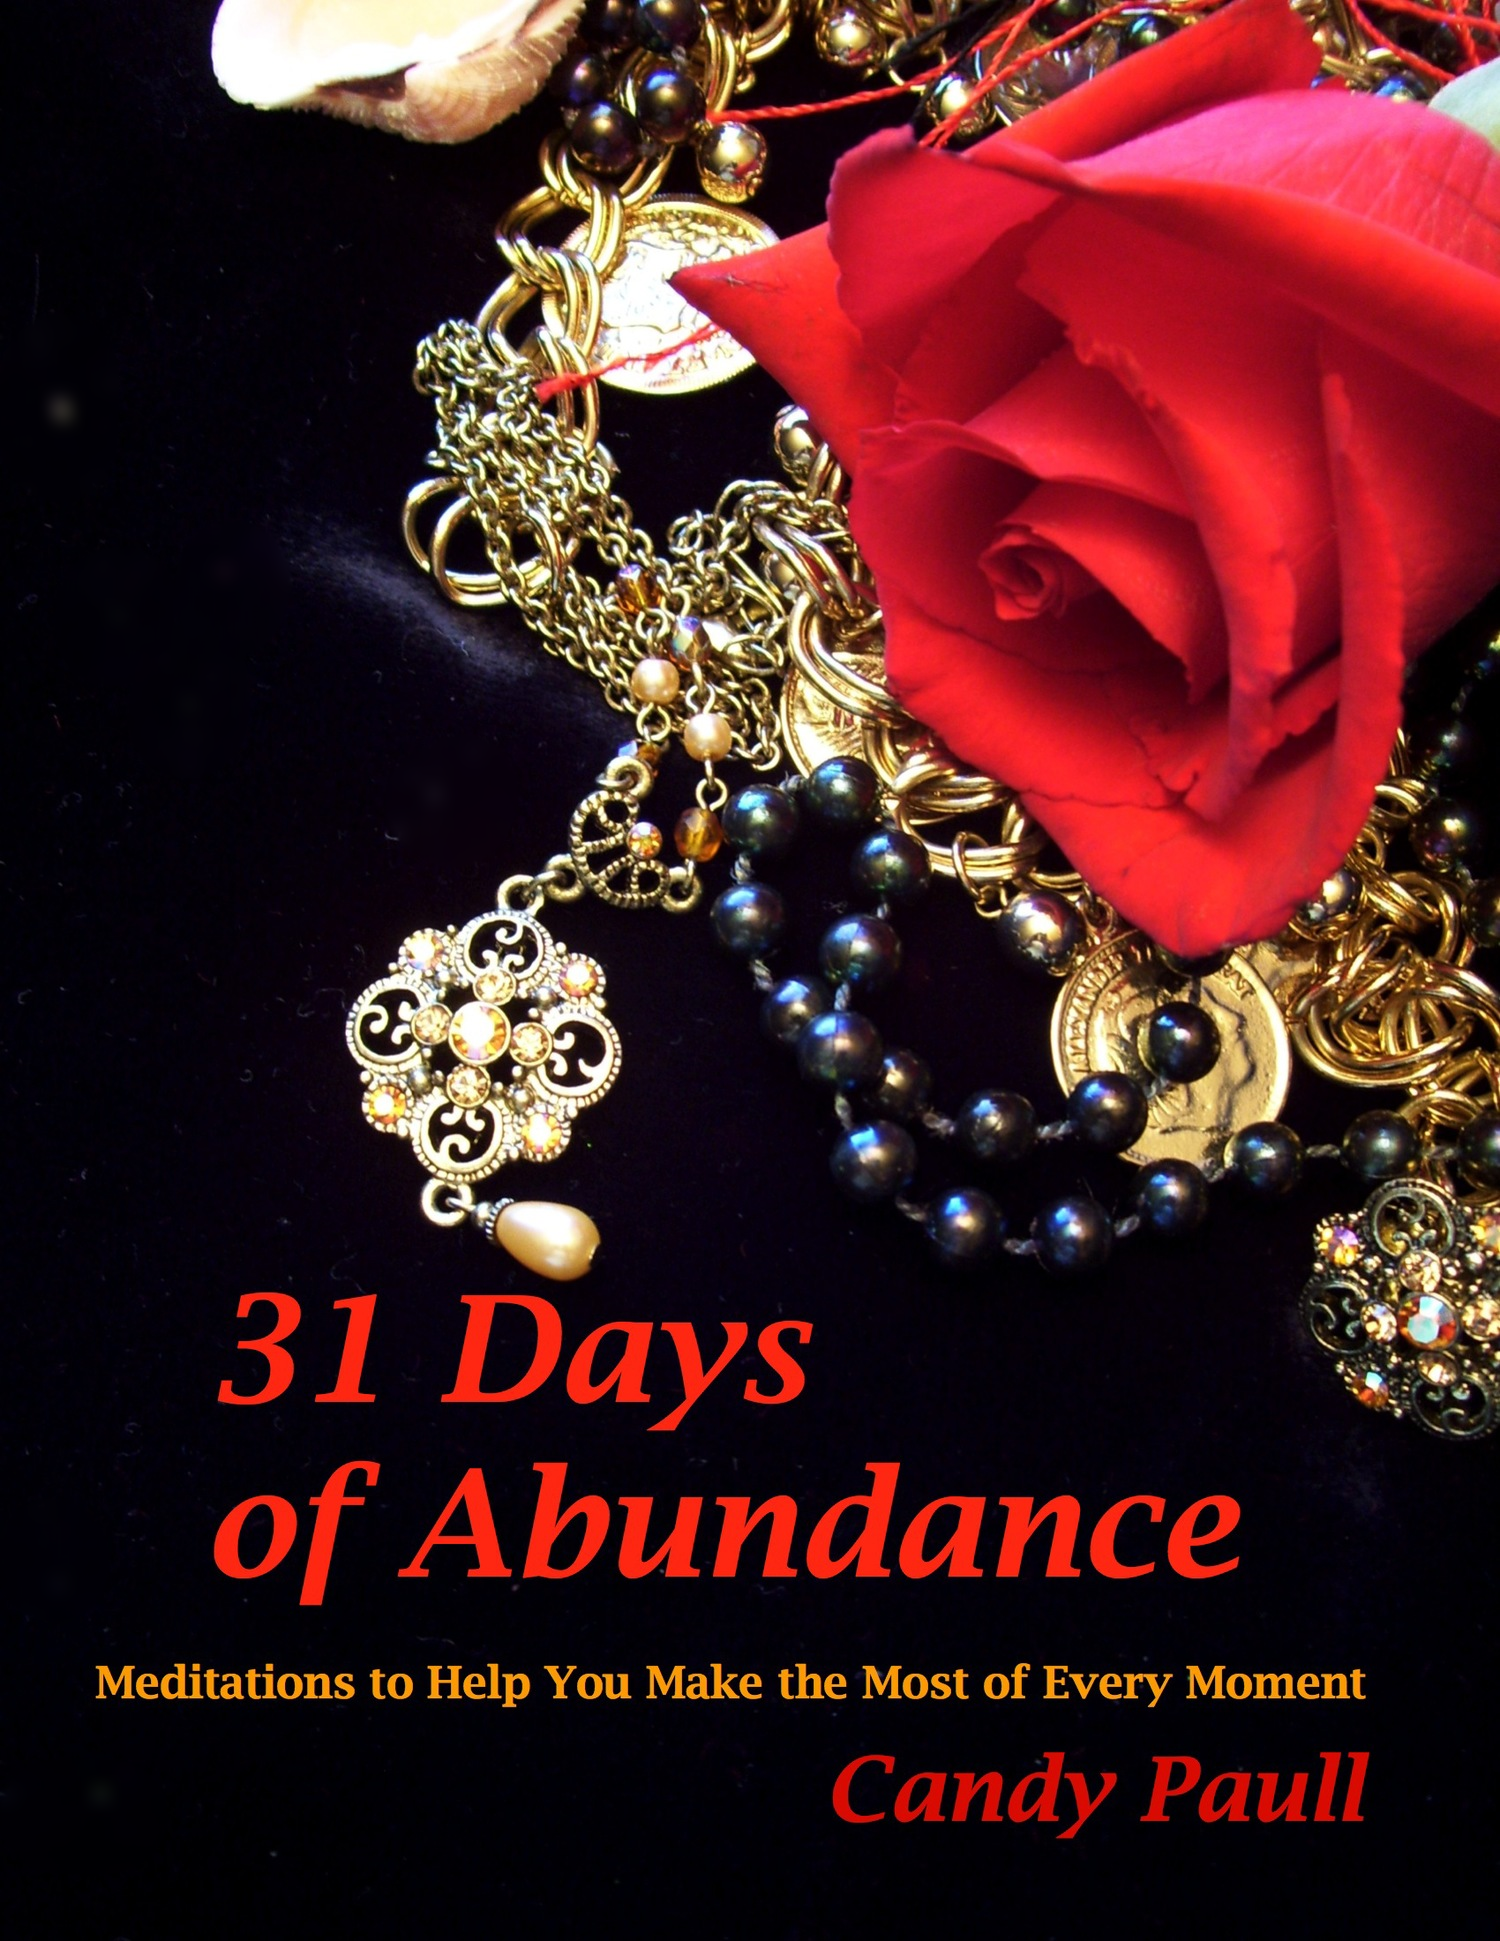 31-days-of-abundance-meditations-to-help-you-make-the-most-of-every-moment.jpg